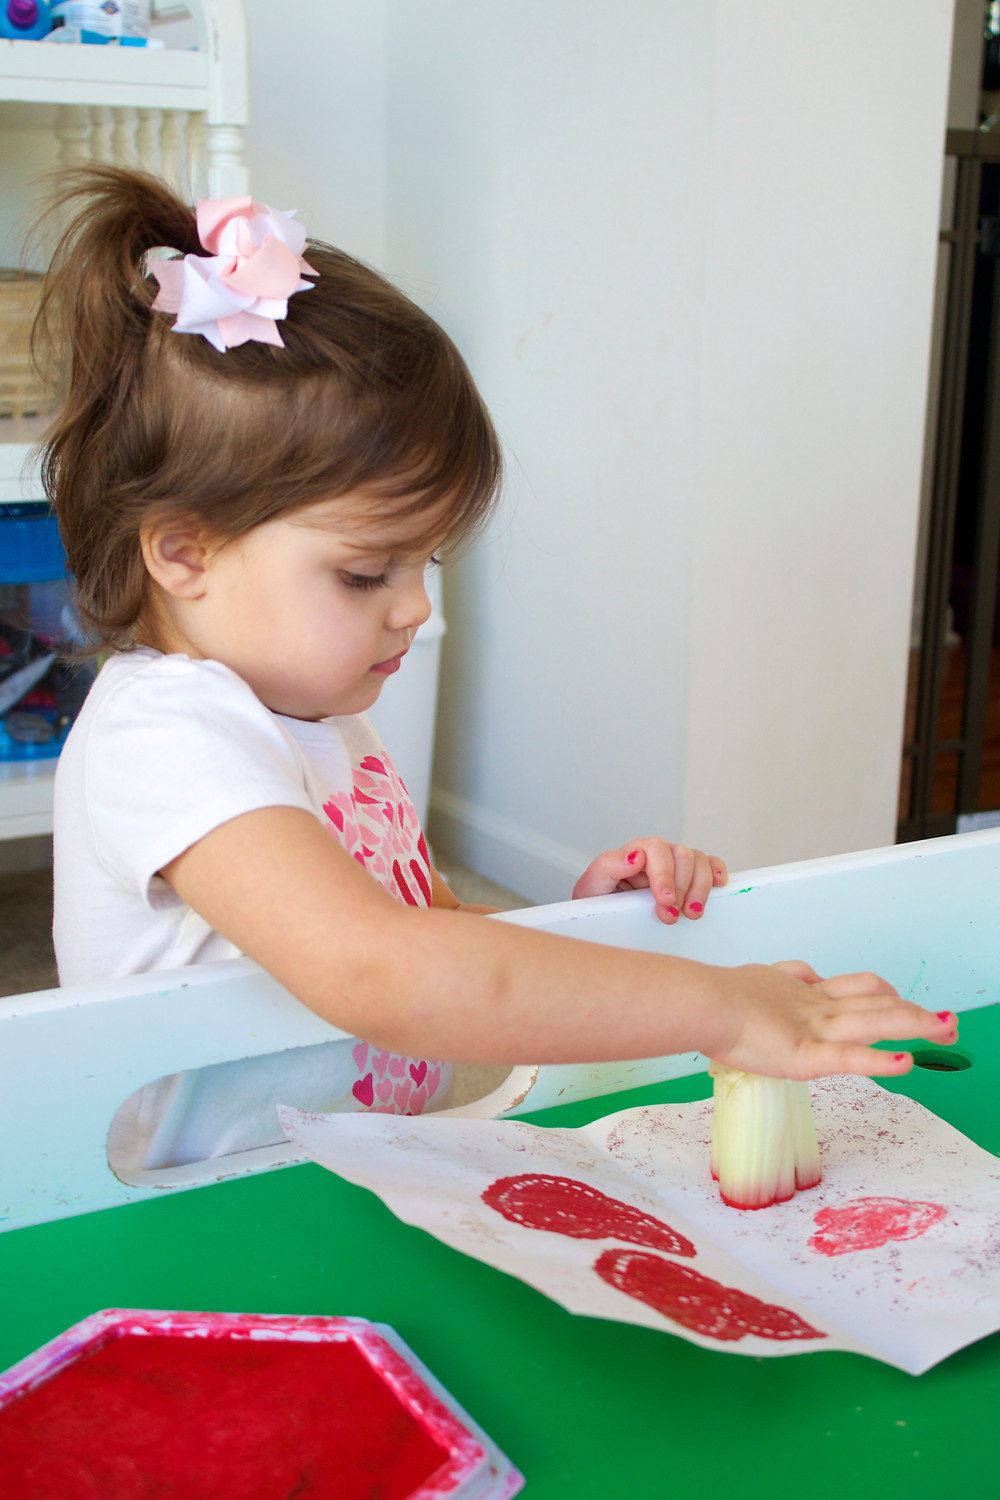 Blue Sky Daycare home daycare child using celery as a stamp in process art project